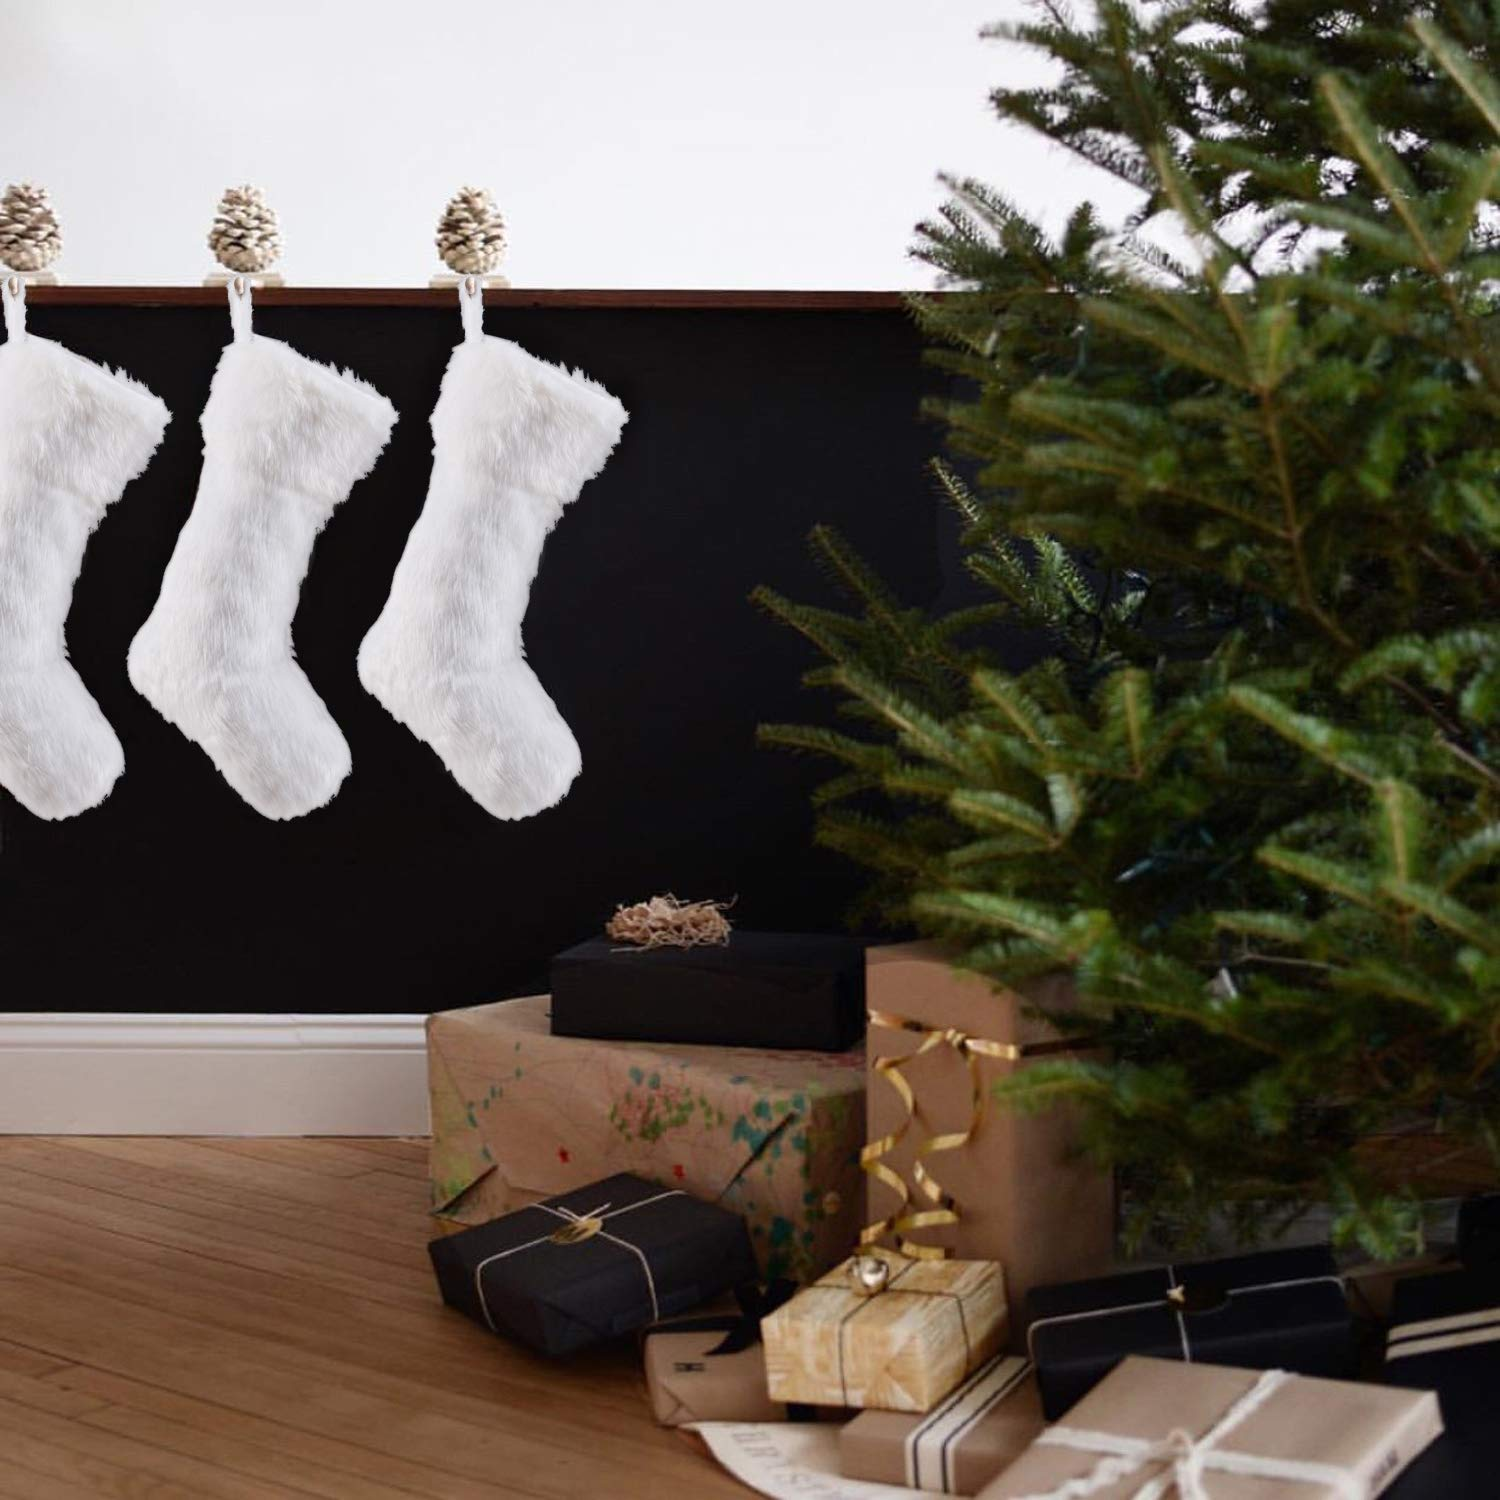 2 Pcs 18 inches Large Snowy Luxury Hanging White Faux Fur Christmas Stocking for Family Holiday Party Christmas Fireplace Decorations Arnech Christmas Stockings